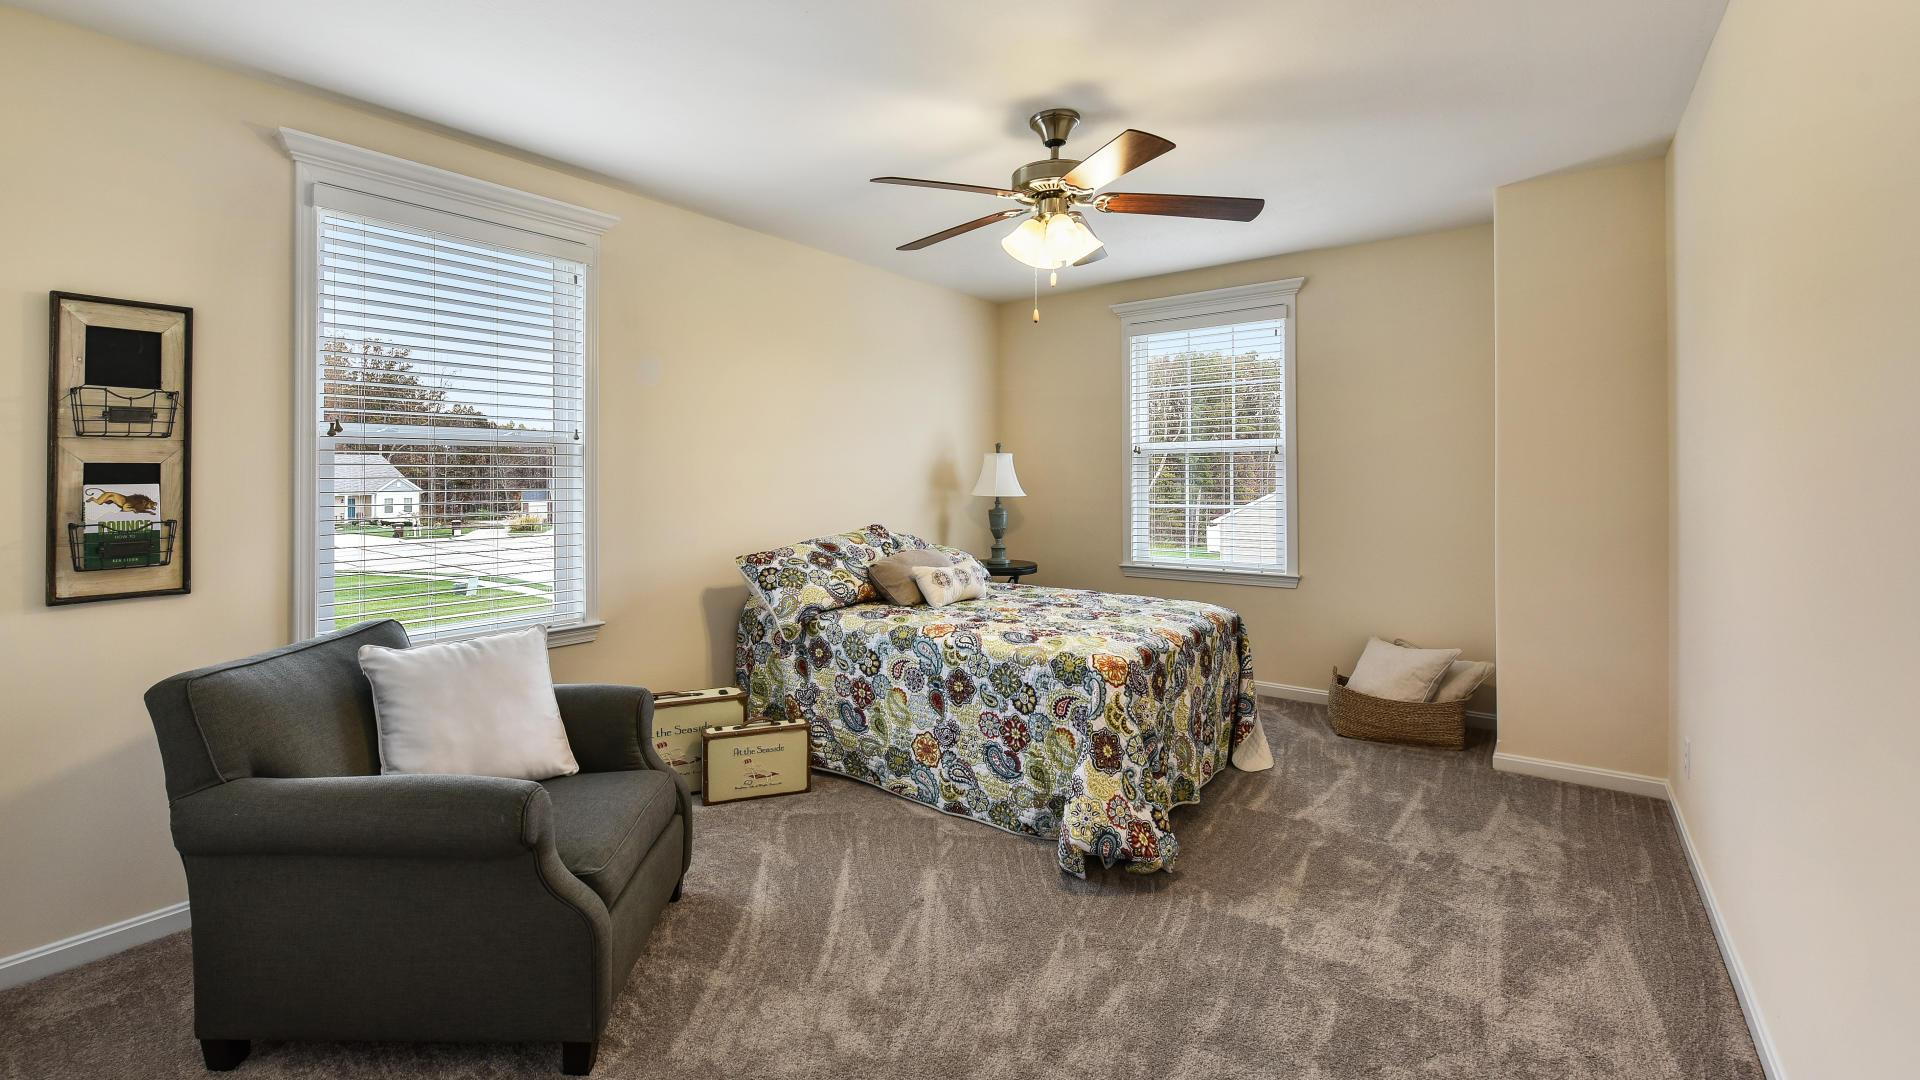 Bedroom featured in the Birmingham By Maronda Homes in Pittsburgh, PA